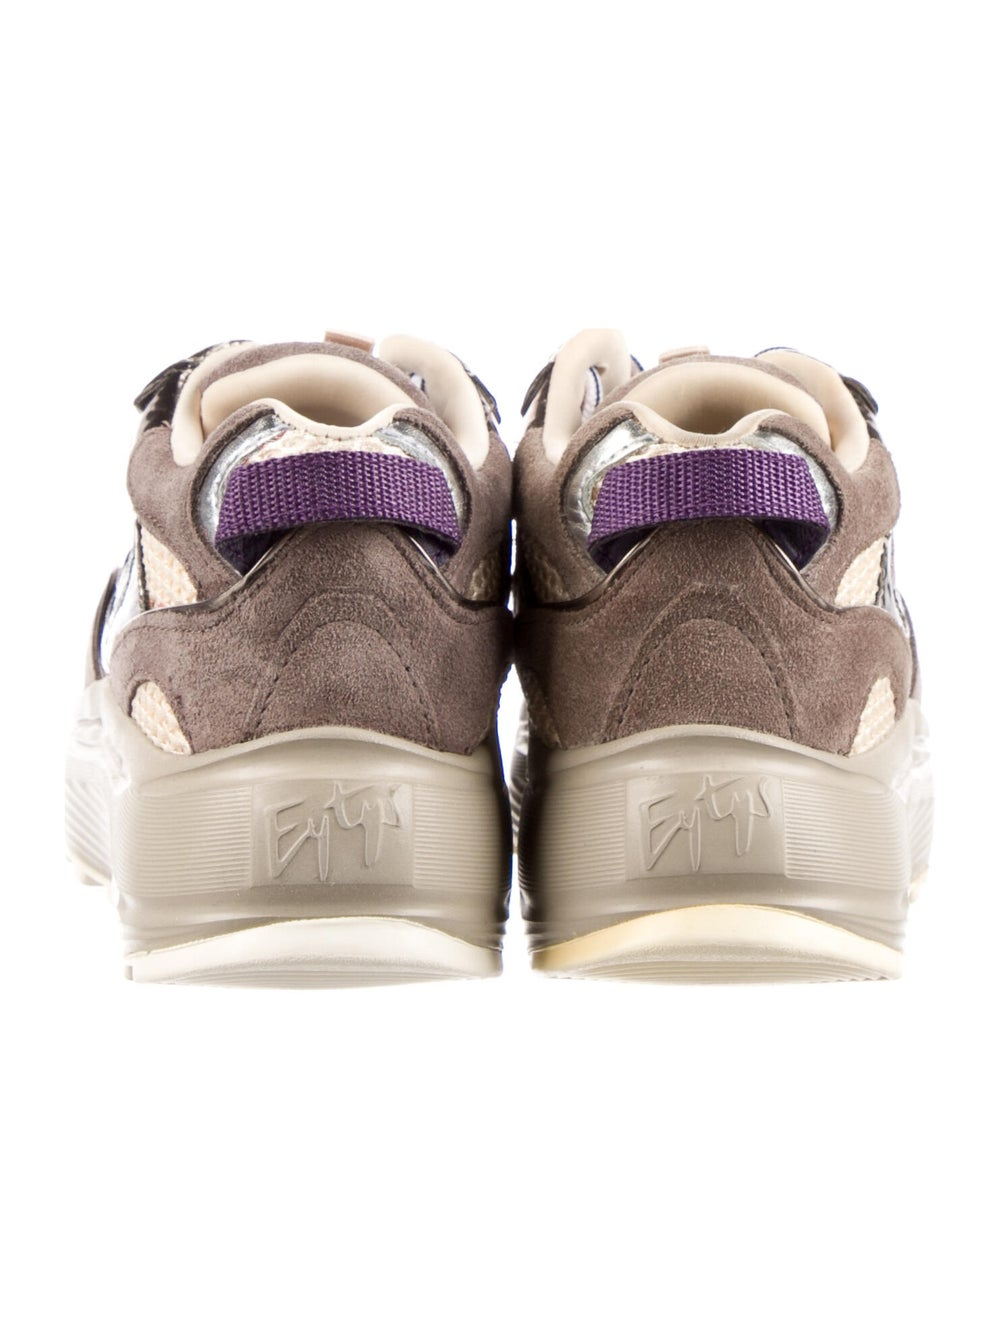 Eytys Jet Chunky Sneakers - image 4